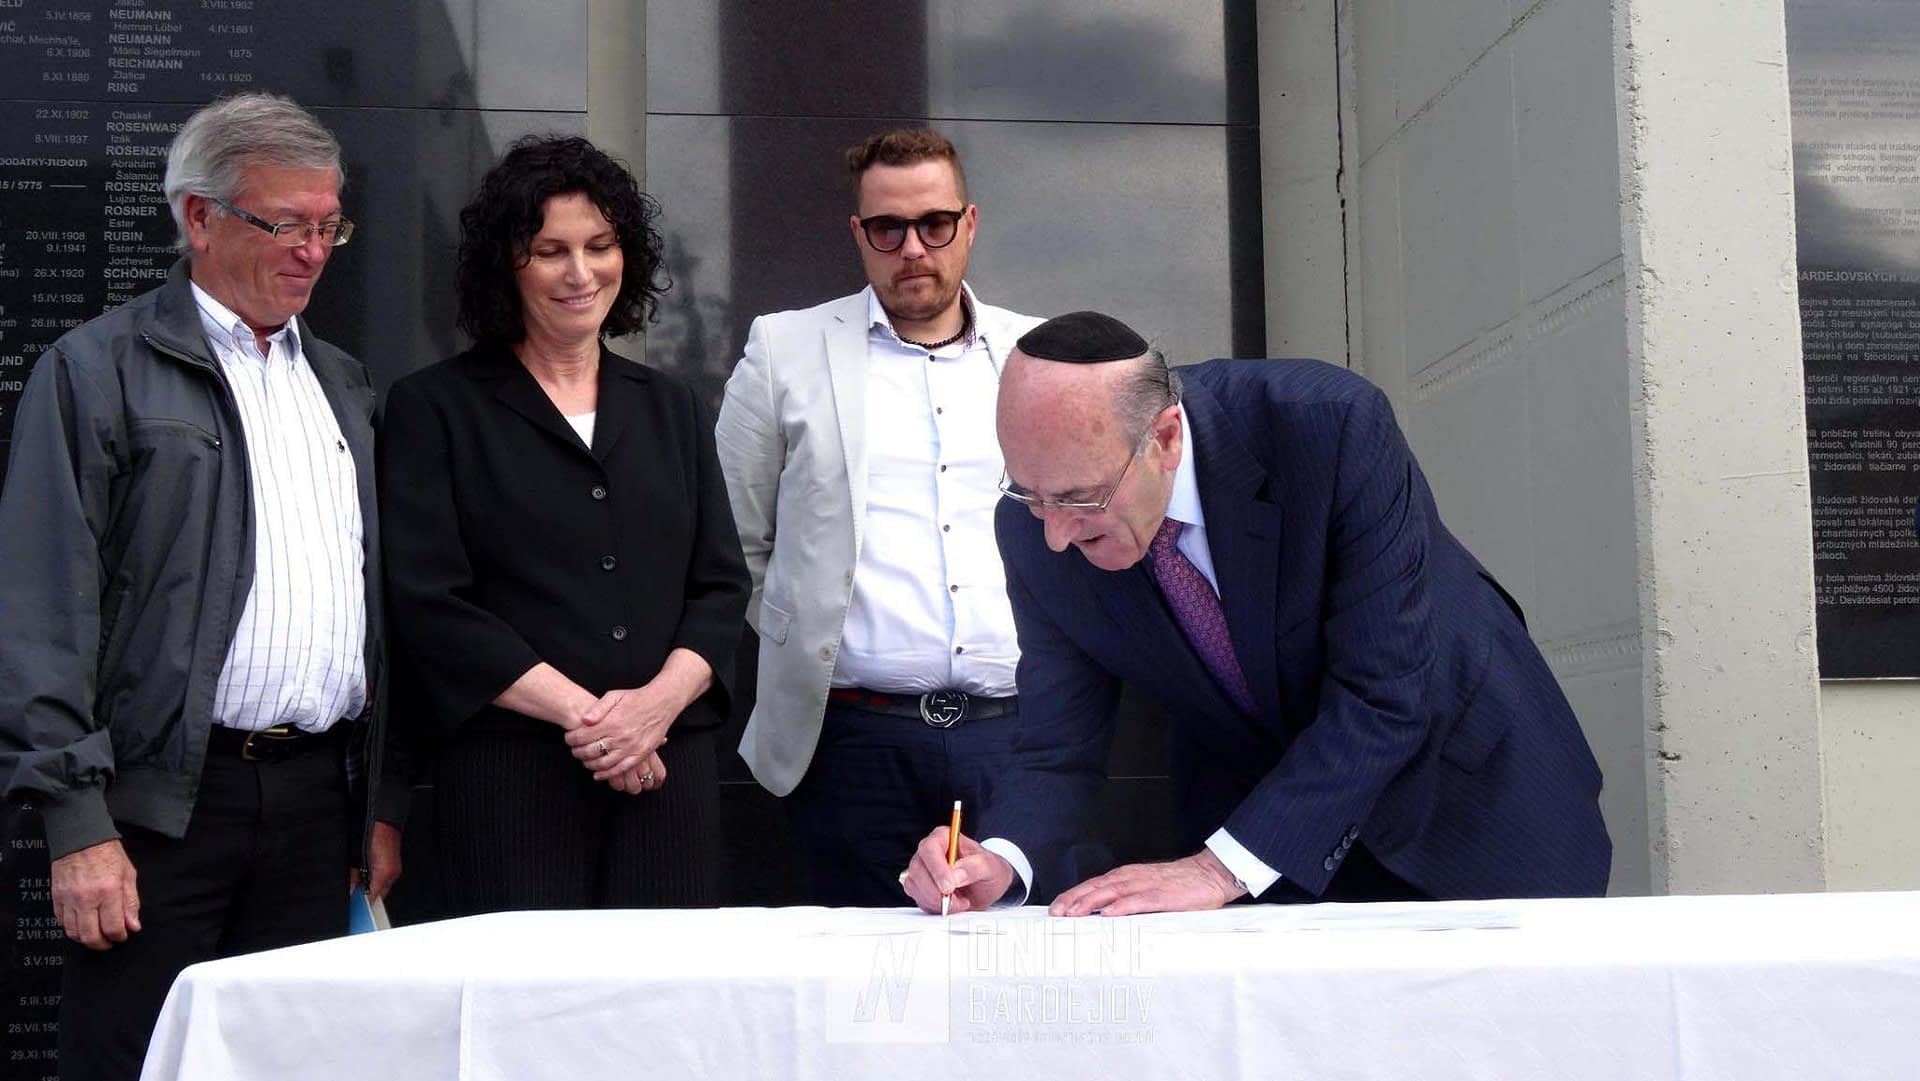 Mr. Emil A. Fish signs the Memorandum between our organization and UZZNO (the Central Union of Jewish Religious Communities in Slovakia) for the restoration of Beith Hamidrash.